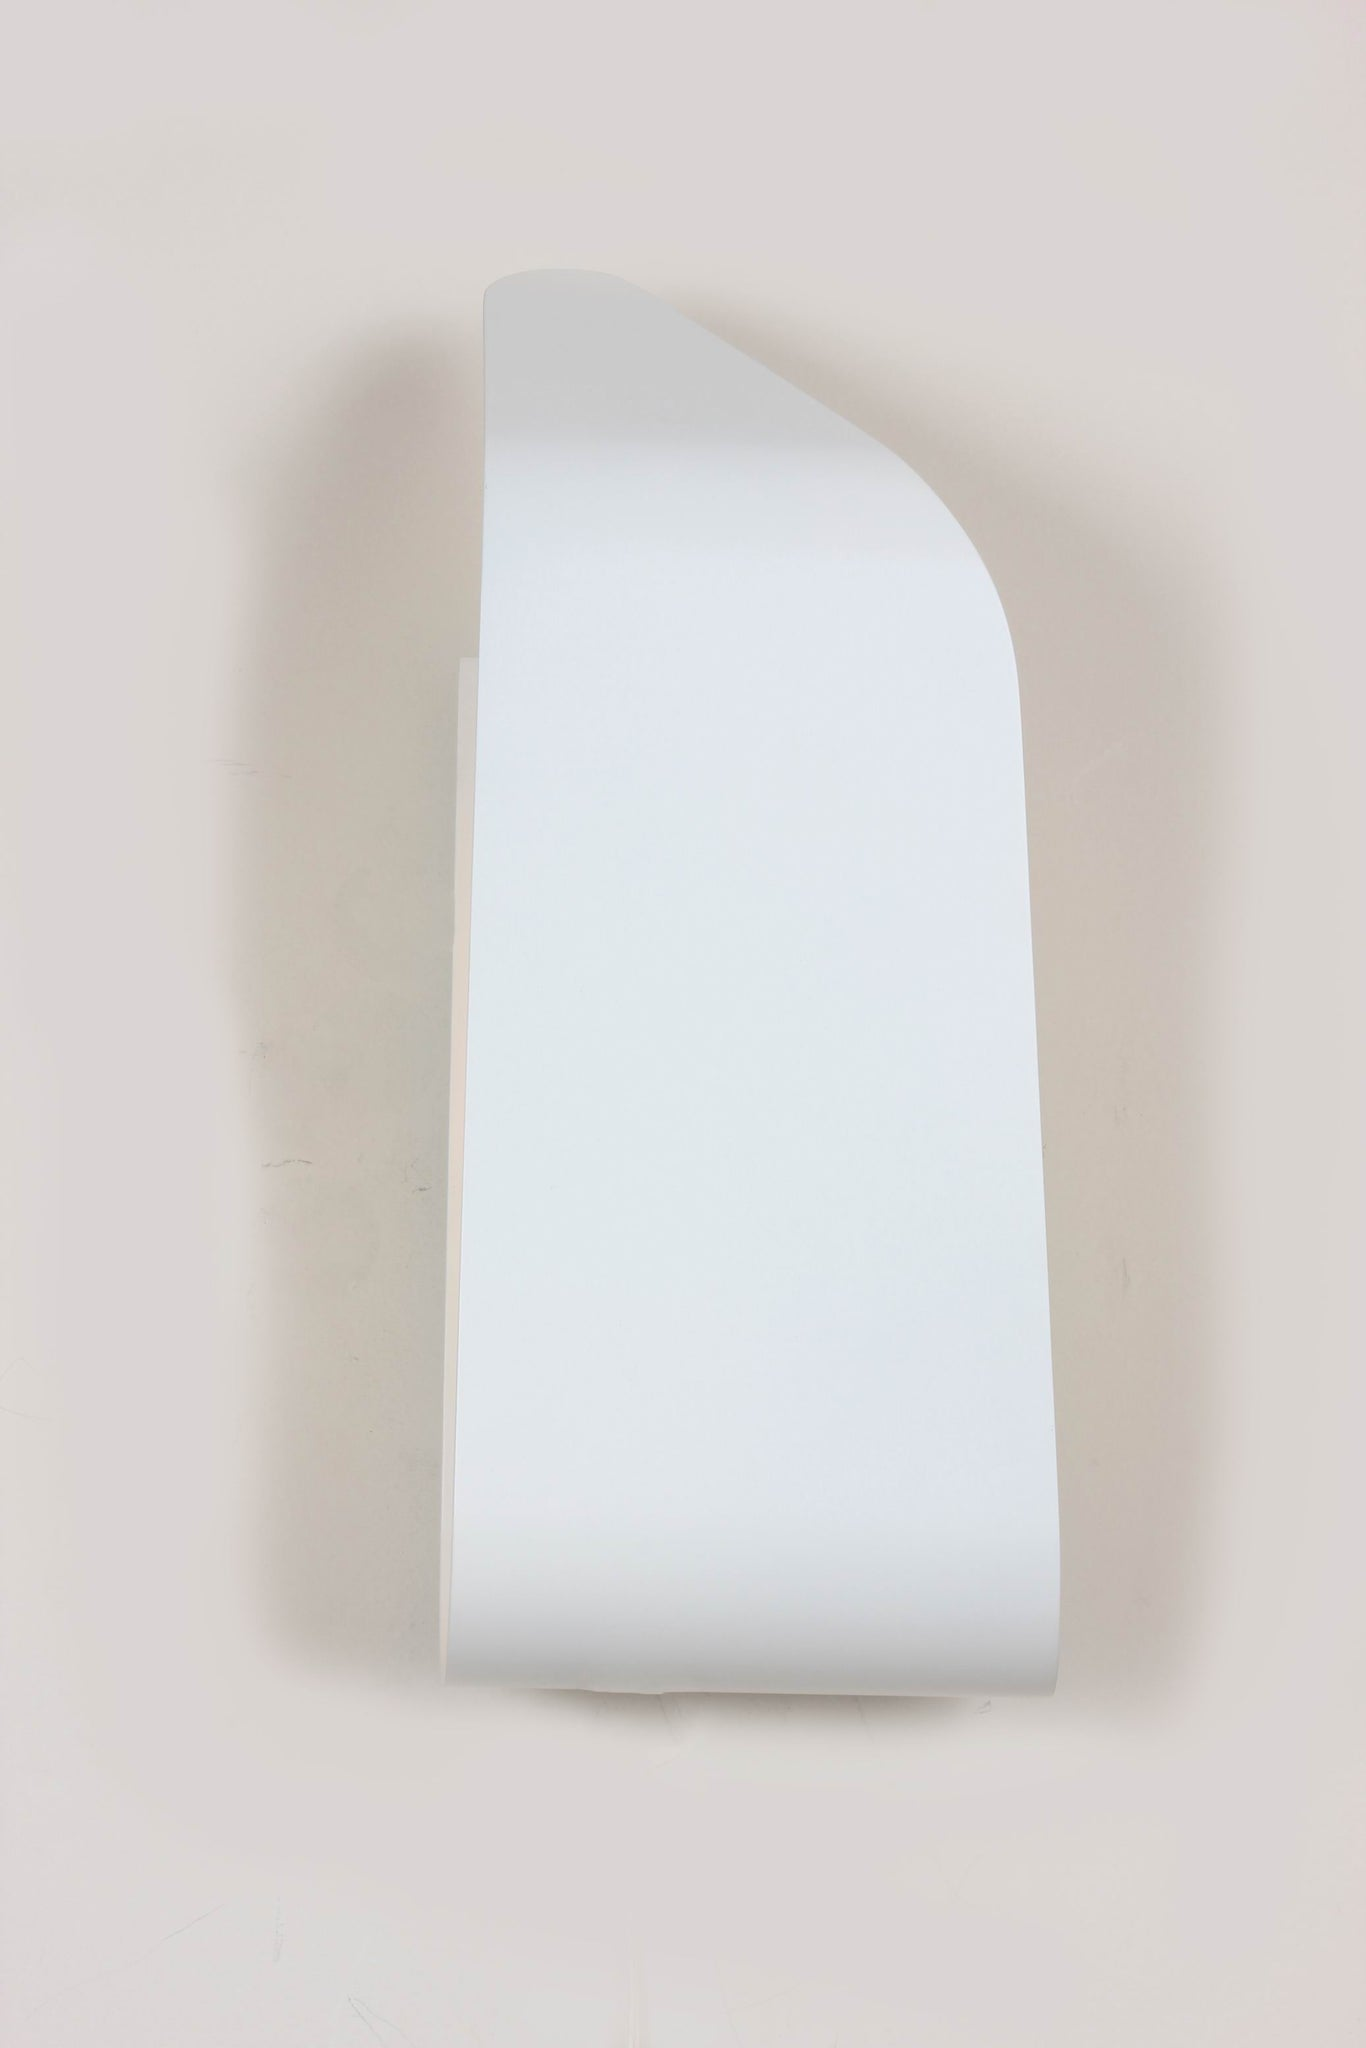 The Terzani wall Sconce [LS859WWHT]